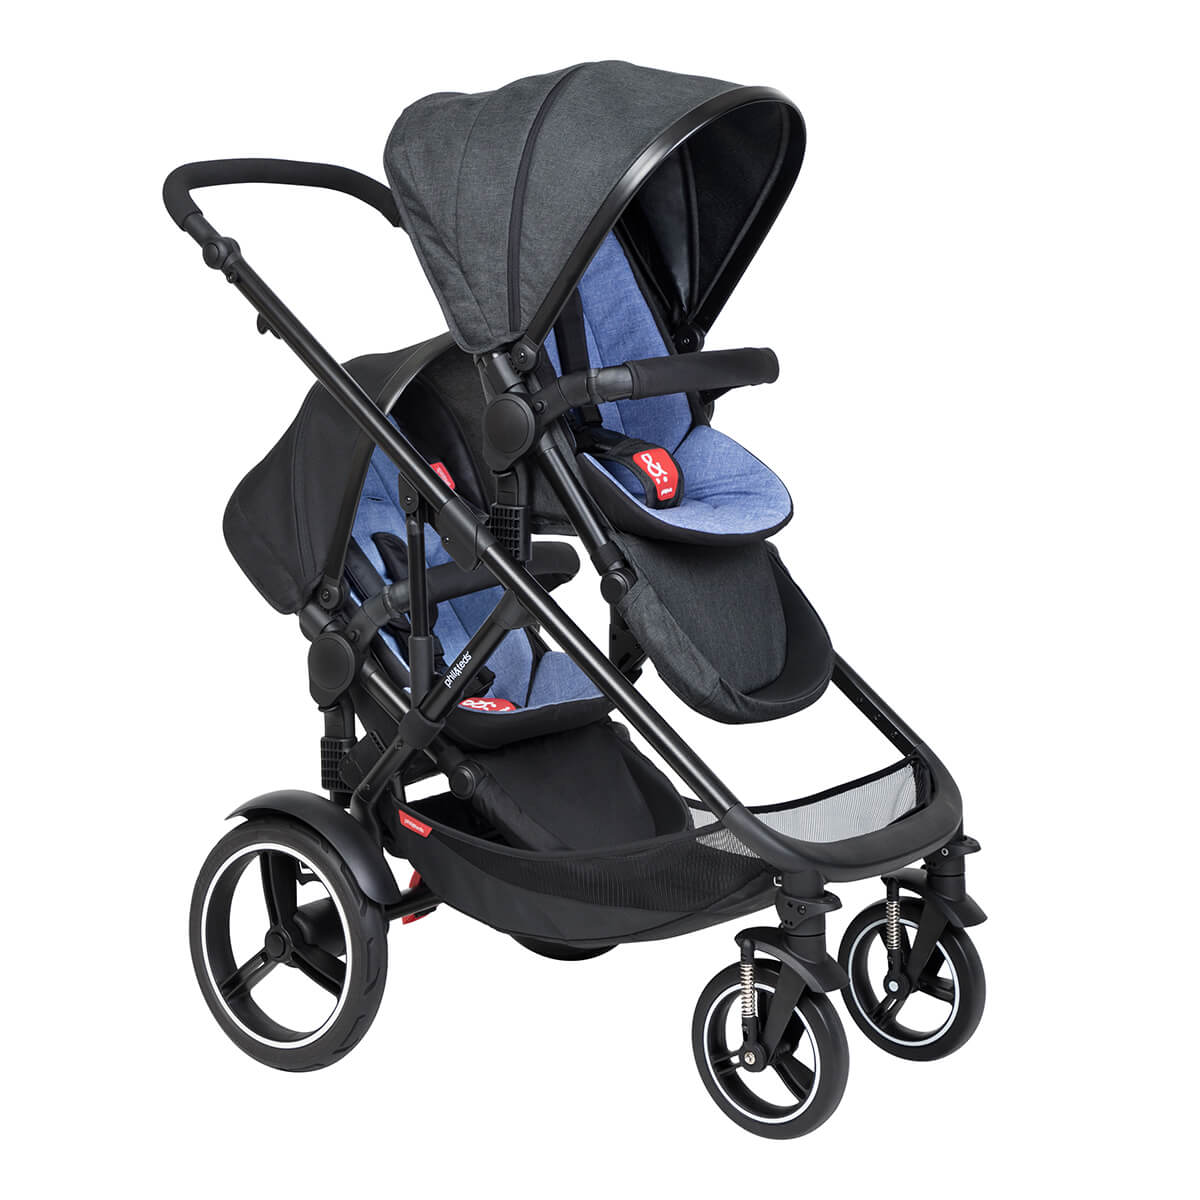 https://cdn.accentuate.io/4509912891469/19466204315842/philteds-voyager-inline-buggy-with-double-kit-in-rear-in-sky-blue-colour-v1626485555959.jpg?1200x1200